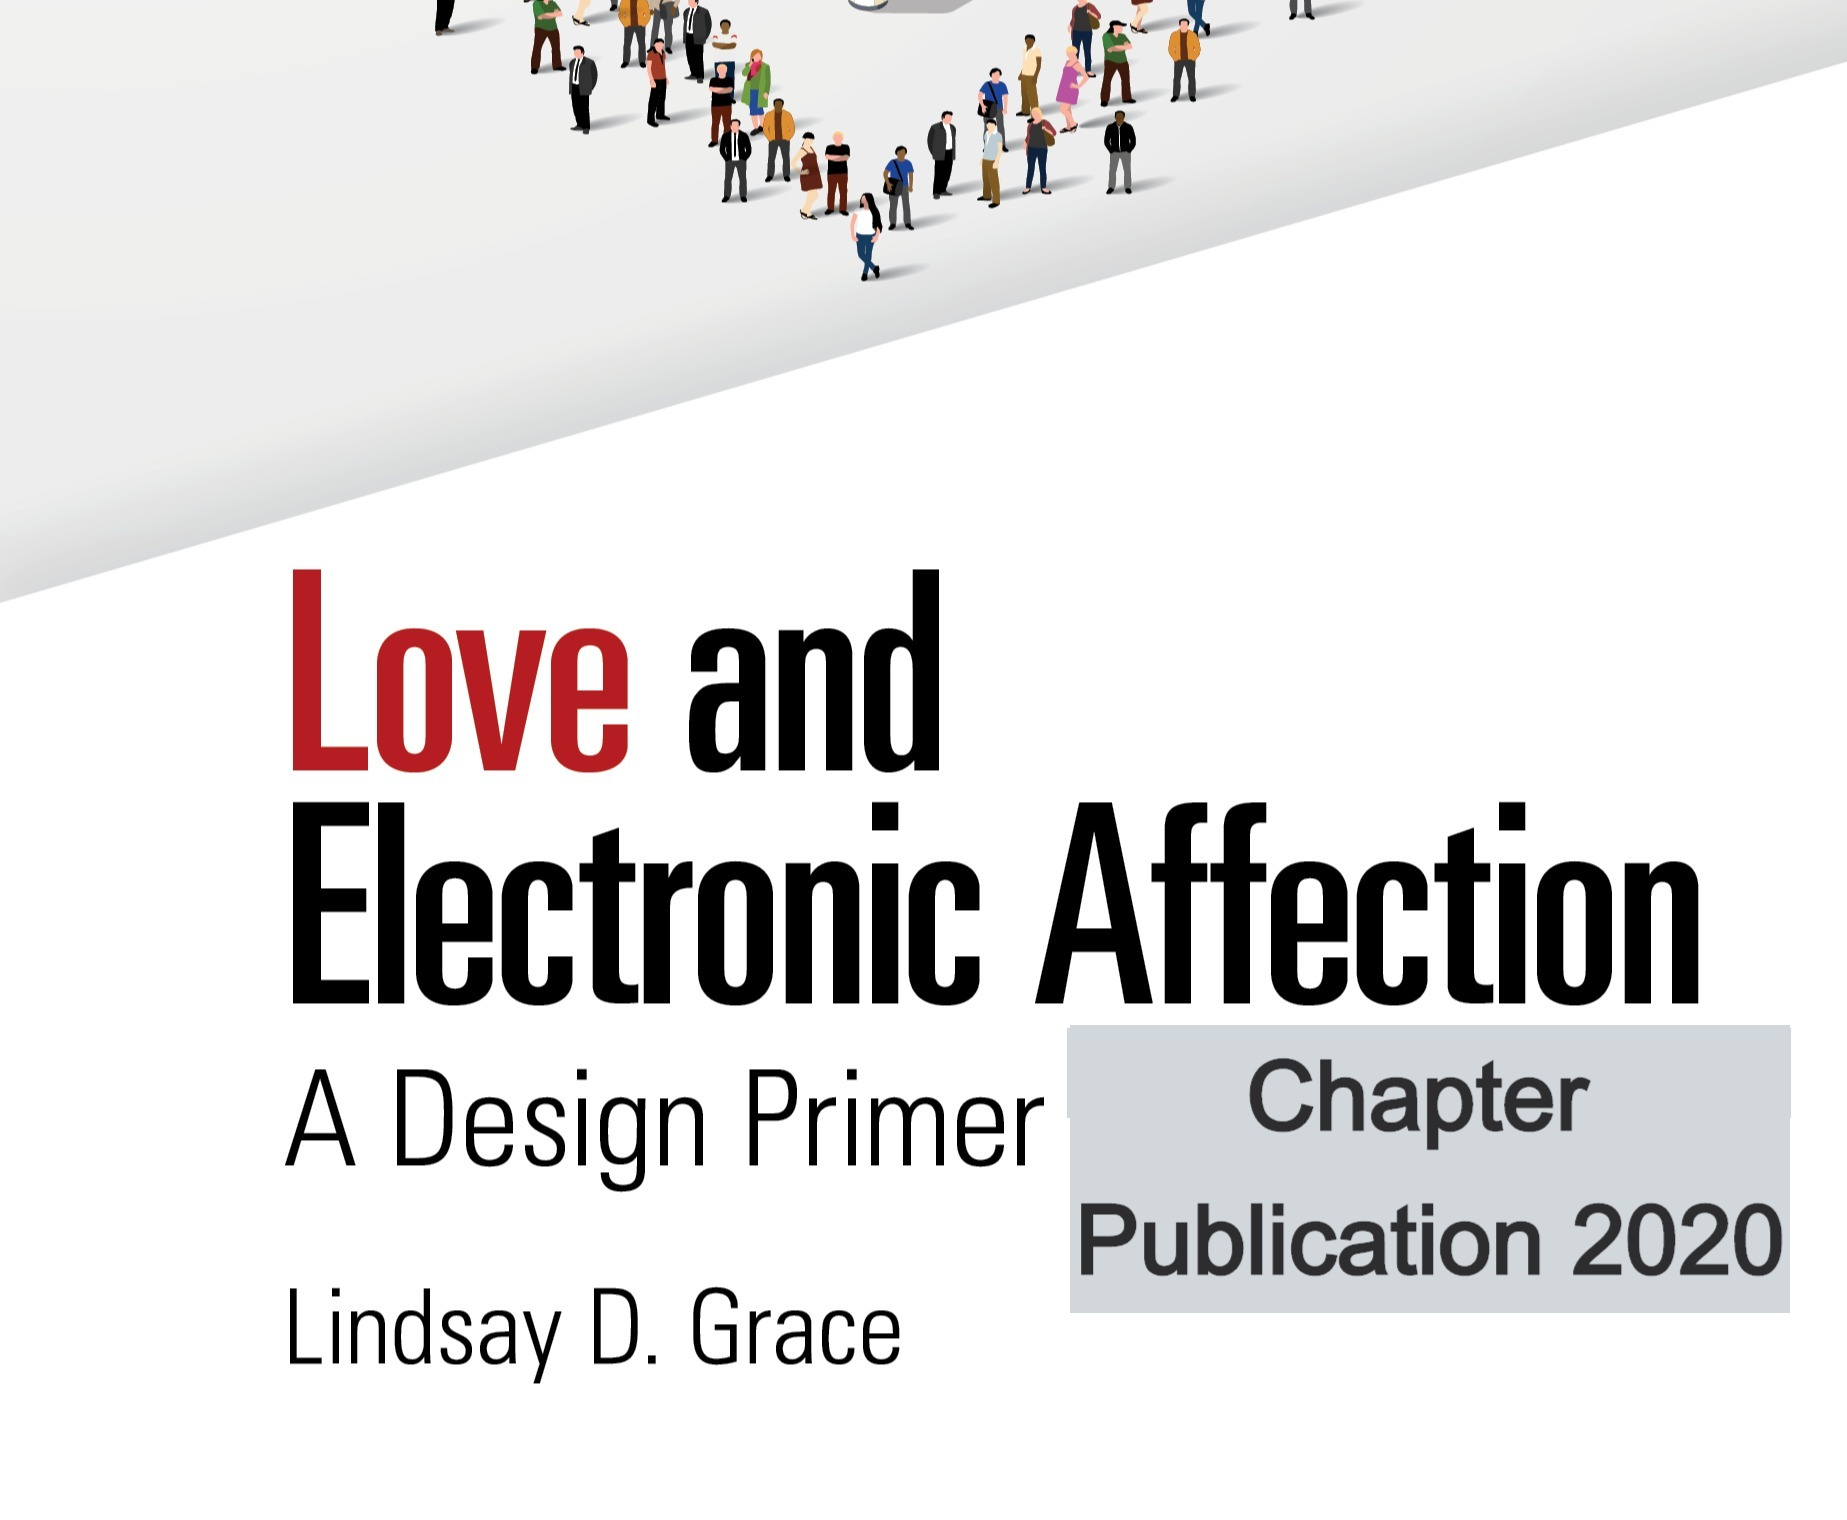 Love and Electronic Affection Chapter